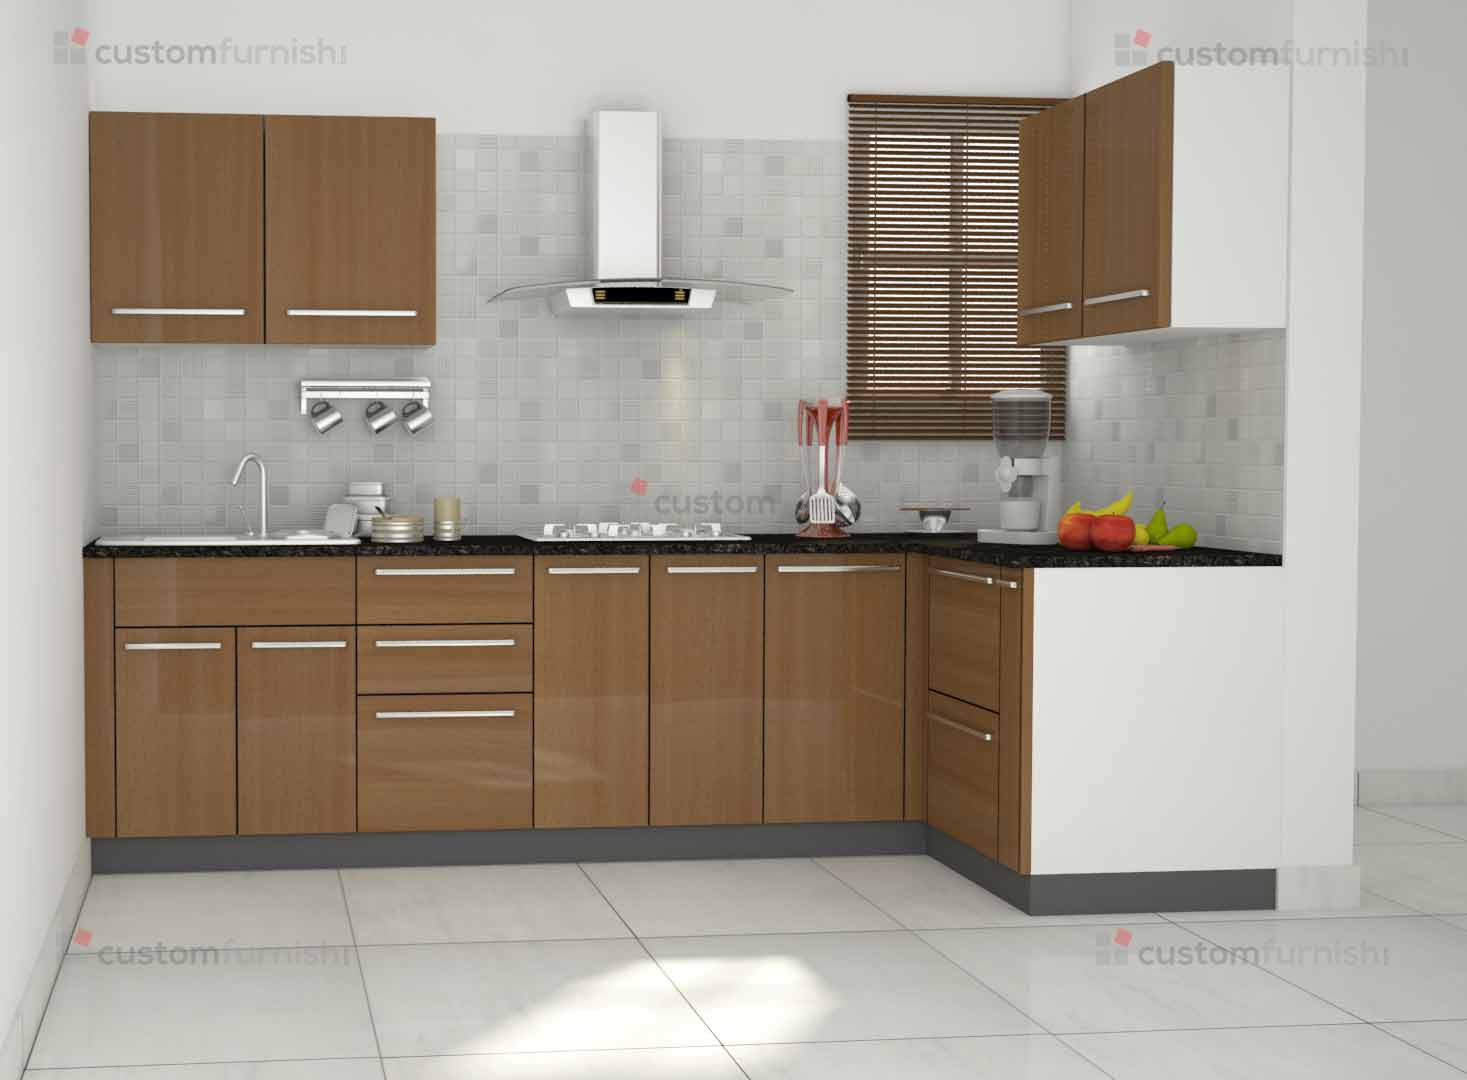 Modular kitchen design l shape crowdbuild for for Kichan dizain